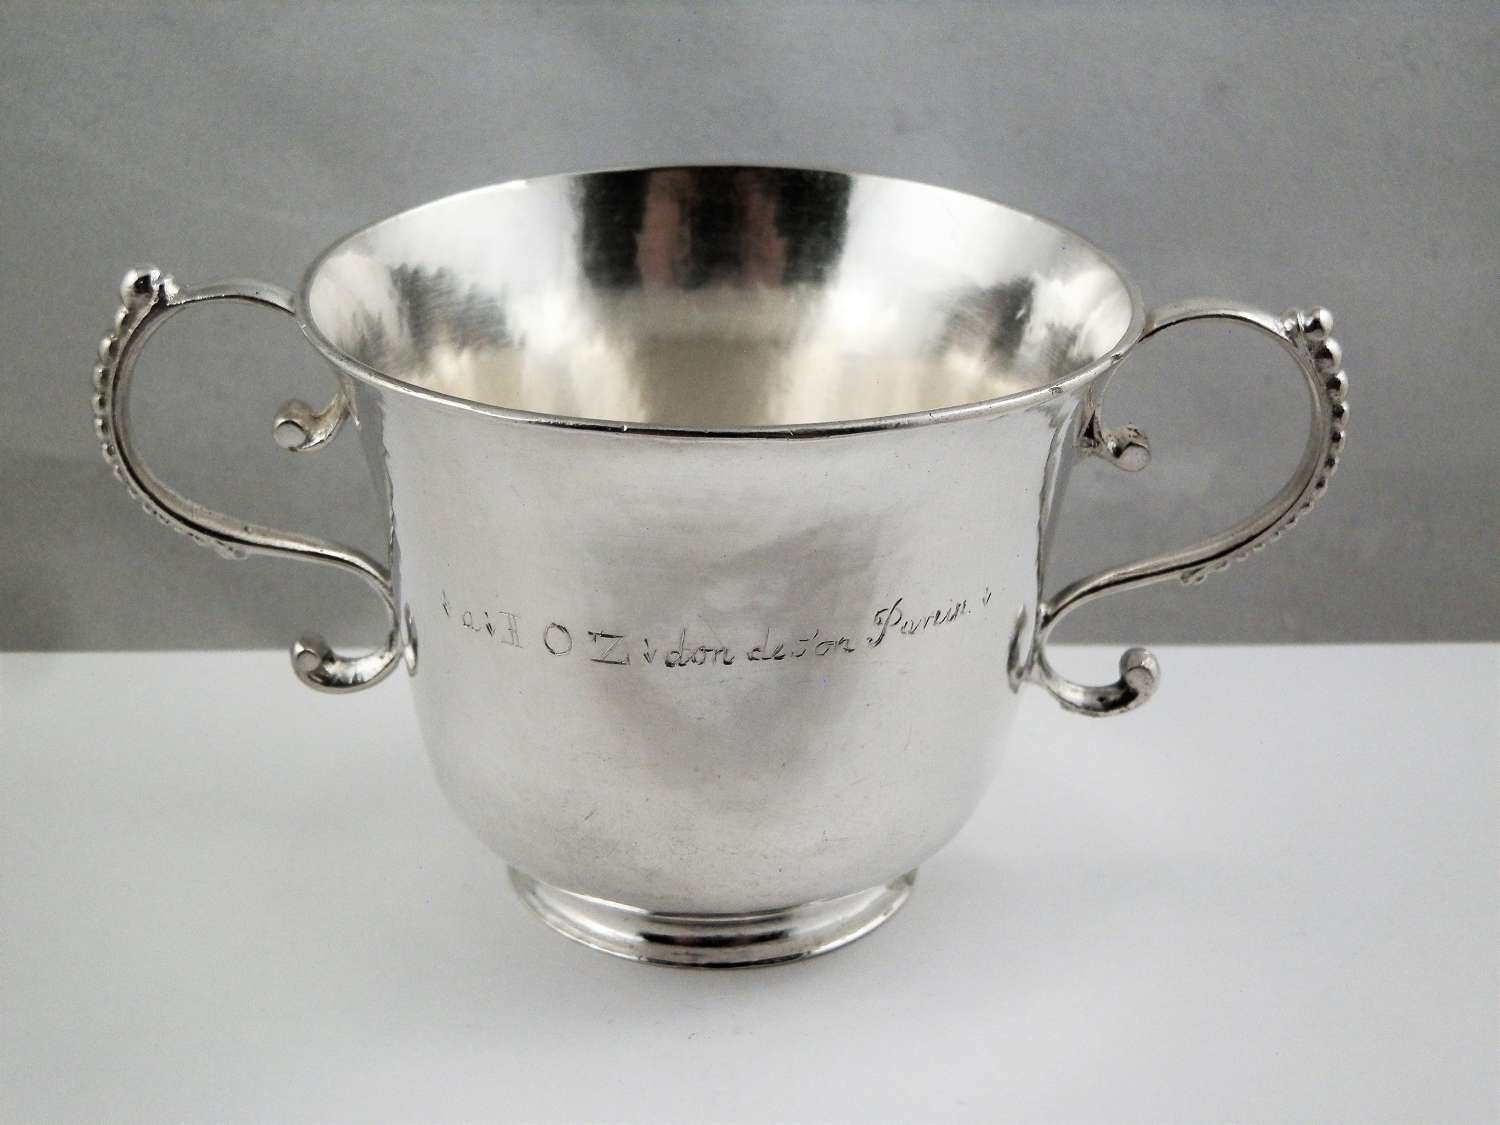 Guernsey silver christening cup, Pierre Mangy, c.1753